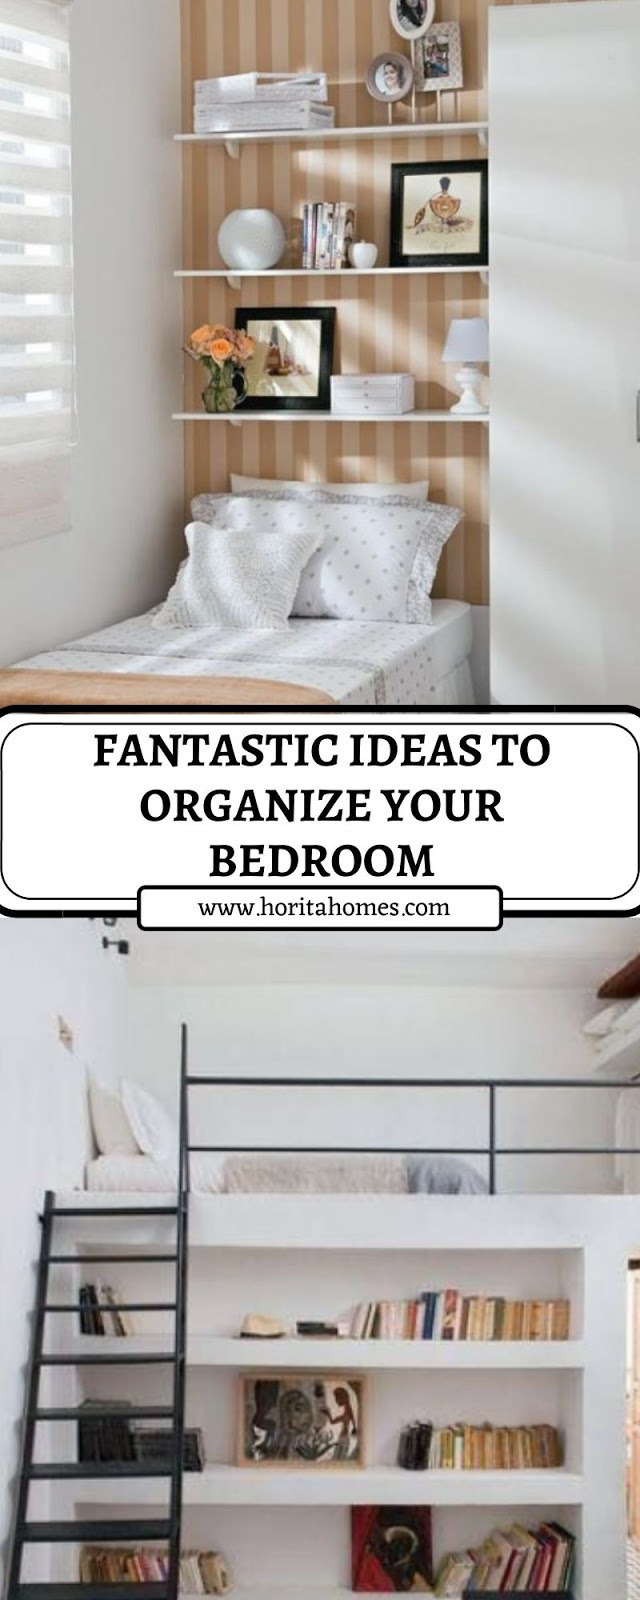 FANTASTIC IDEAS TO ORGANIZE YOUR BEDROOM